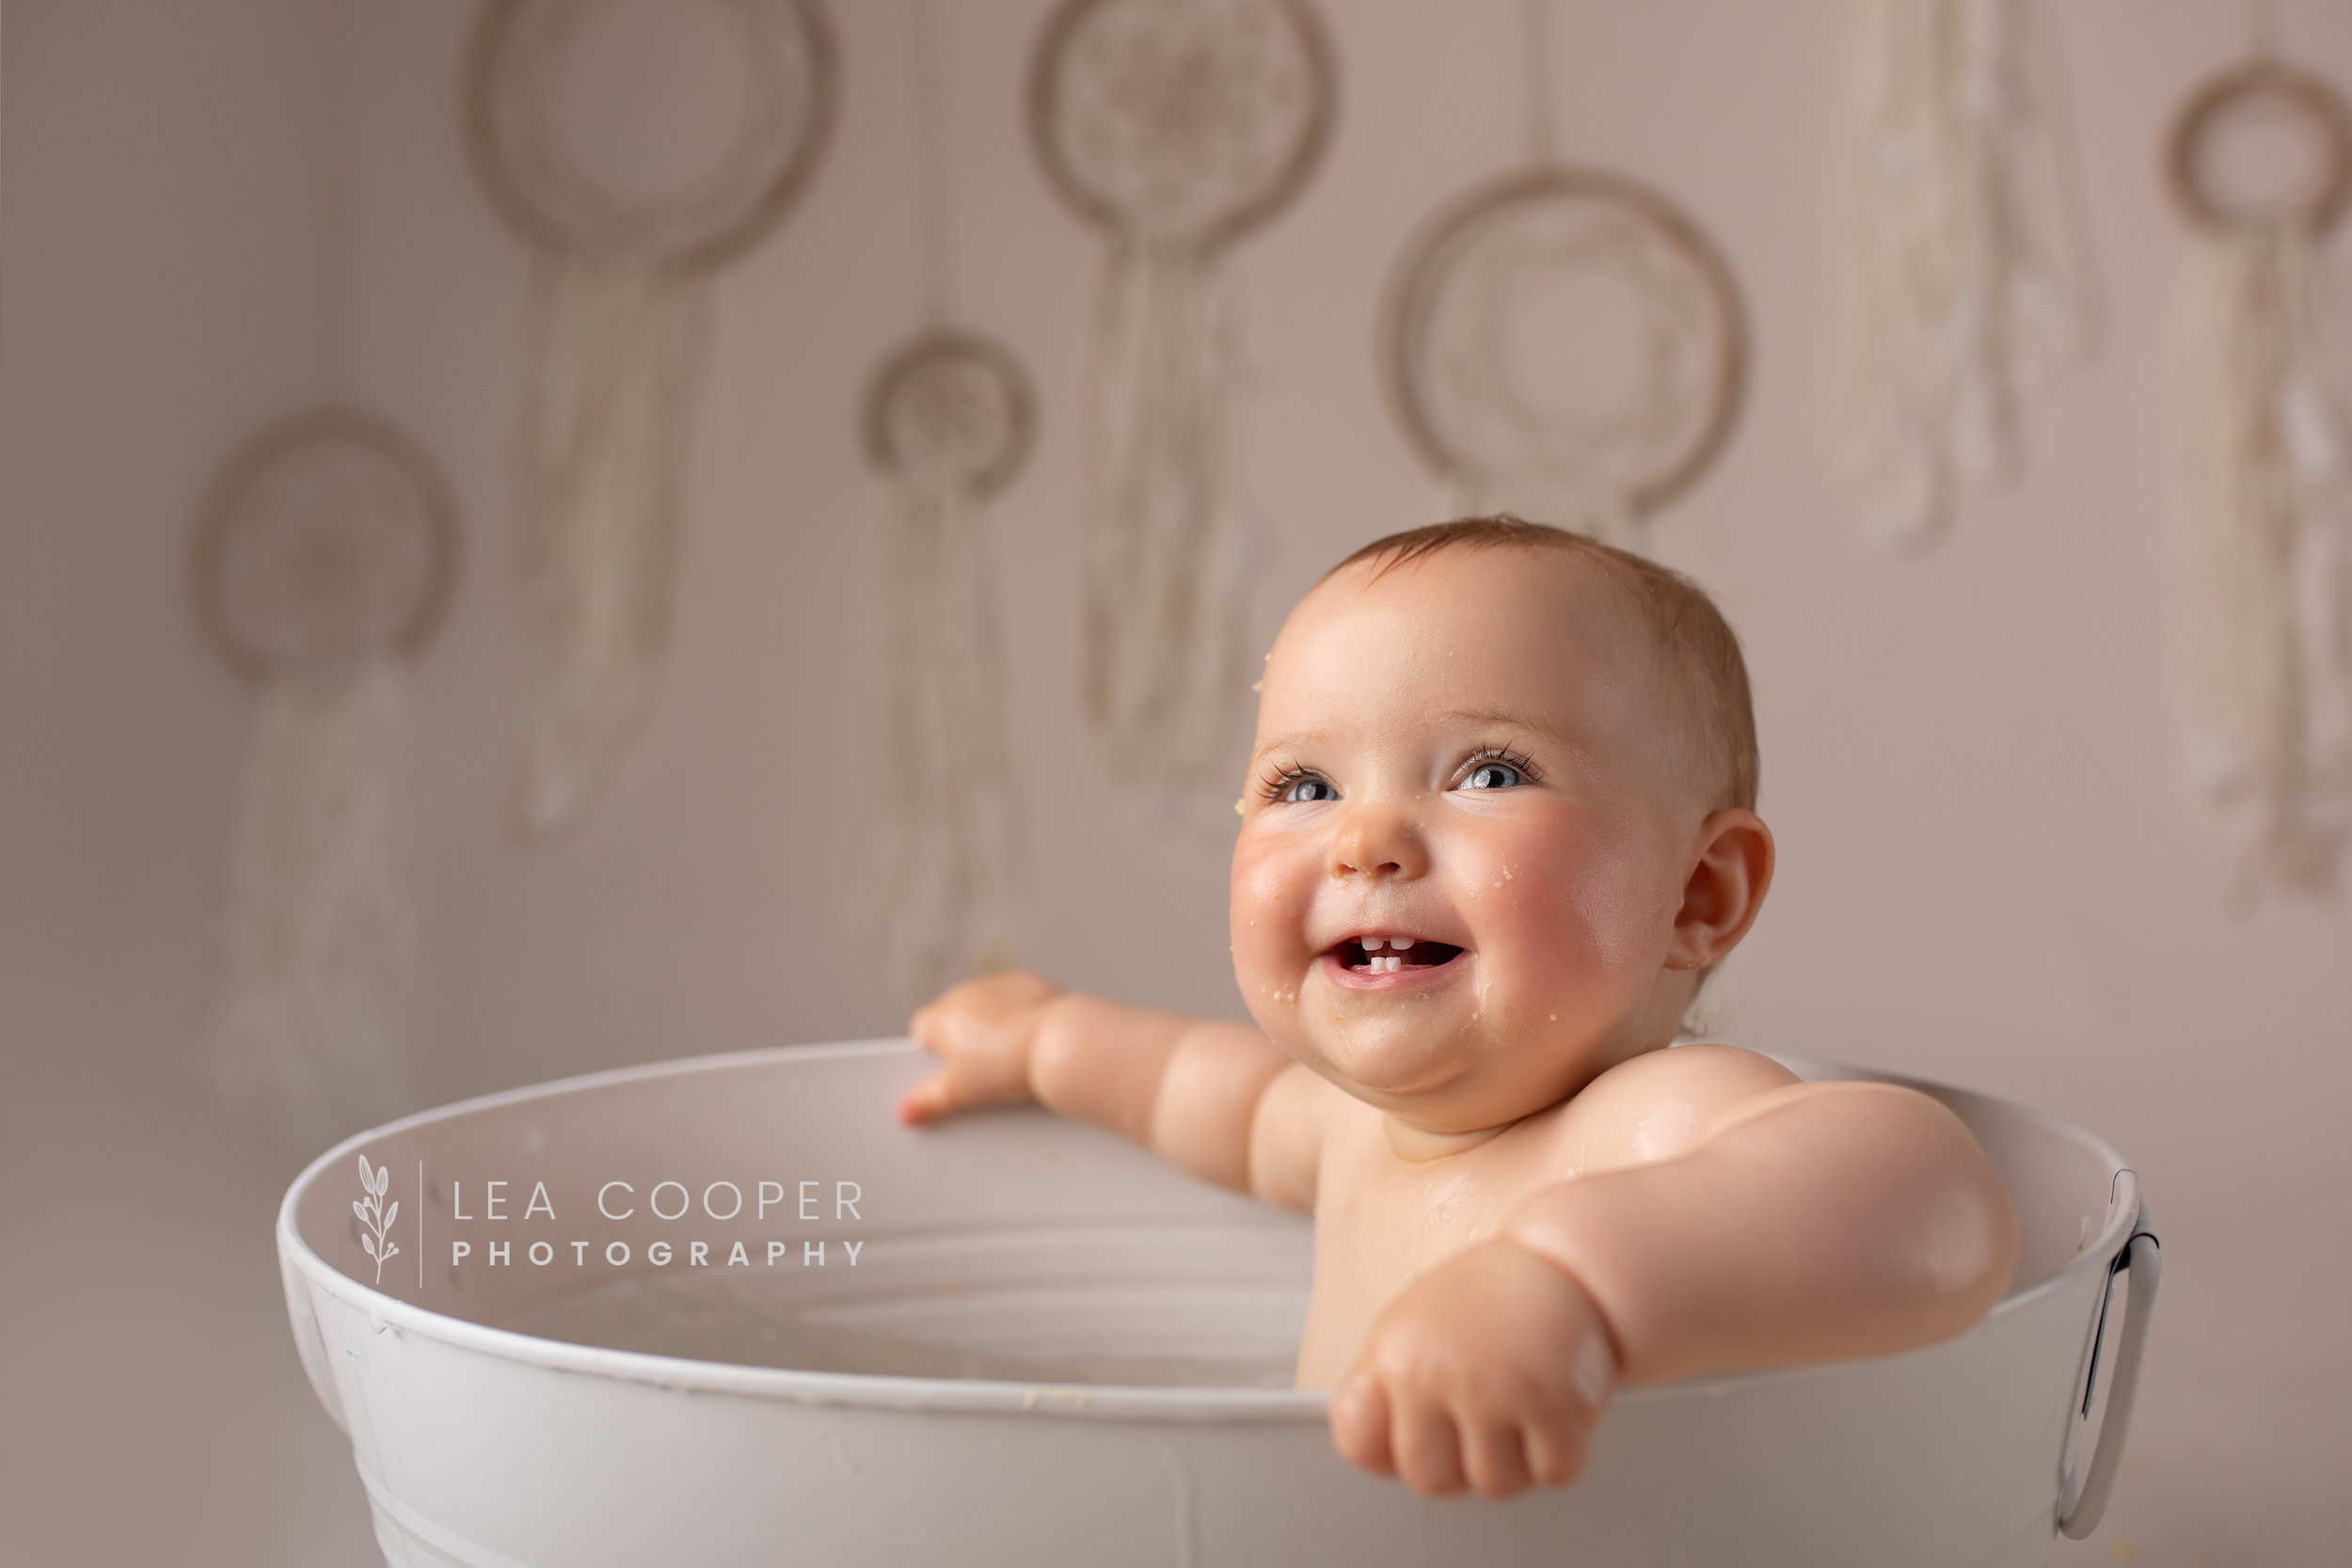 LEA-COOPER-PHOTOGRAPHY-CAKE-SMASH-SESSION-BIRTHDAY-PHOTOS-1ST-BIRTHDAY-SPLASH-SESSION-SMASH-SESSION-CHILDRENS-PHOTOGRAPHY-WILLENHALL-WOLVERHAMPTON-BIRMINGHAM-WEST-MIDLANDS-UK-10.jpg